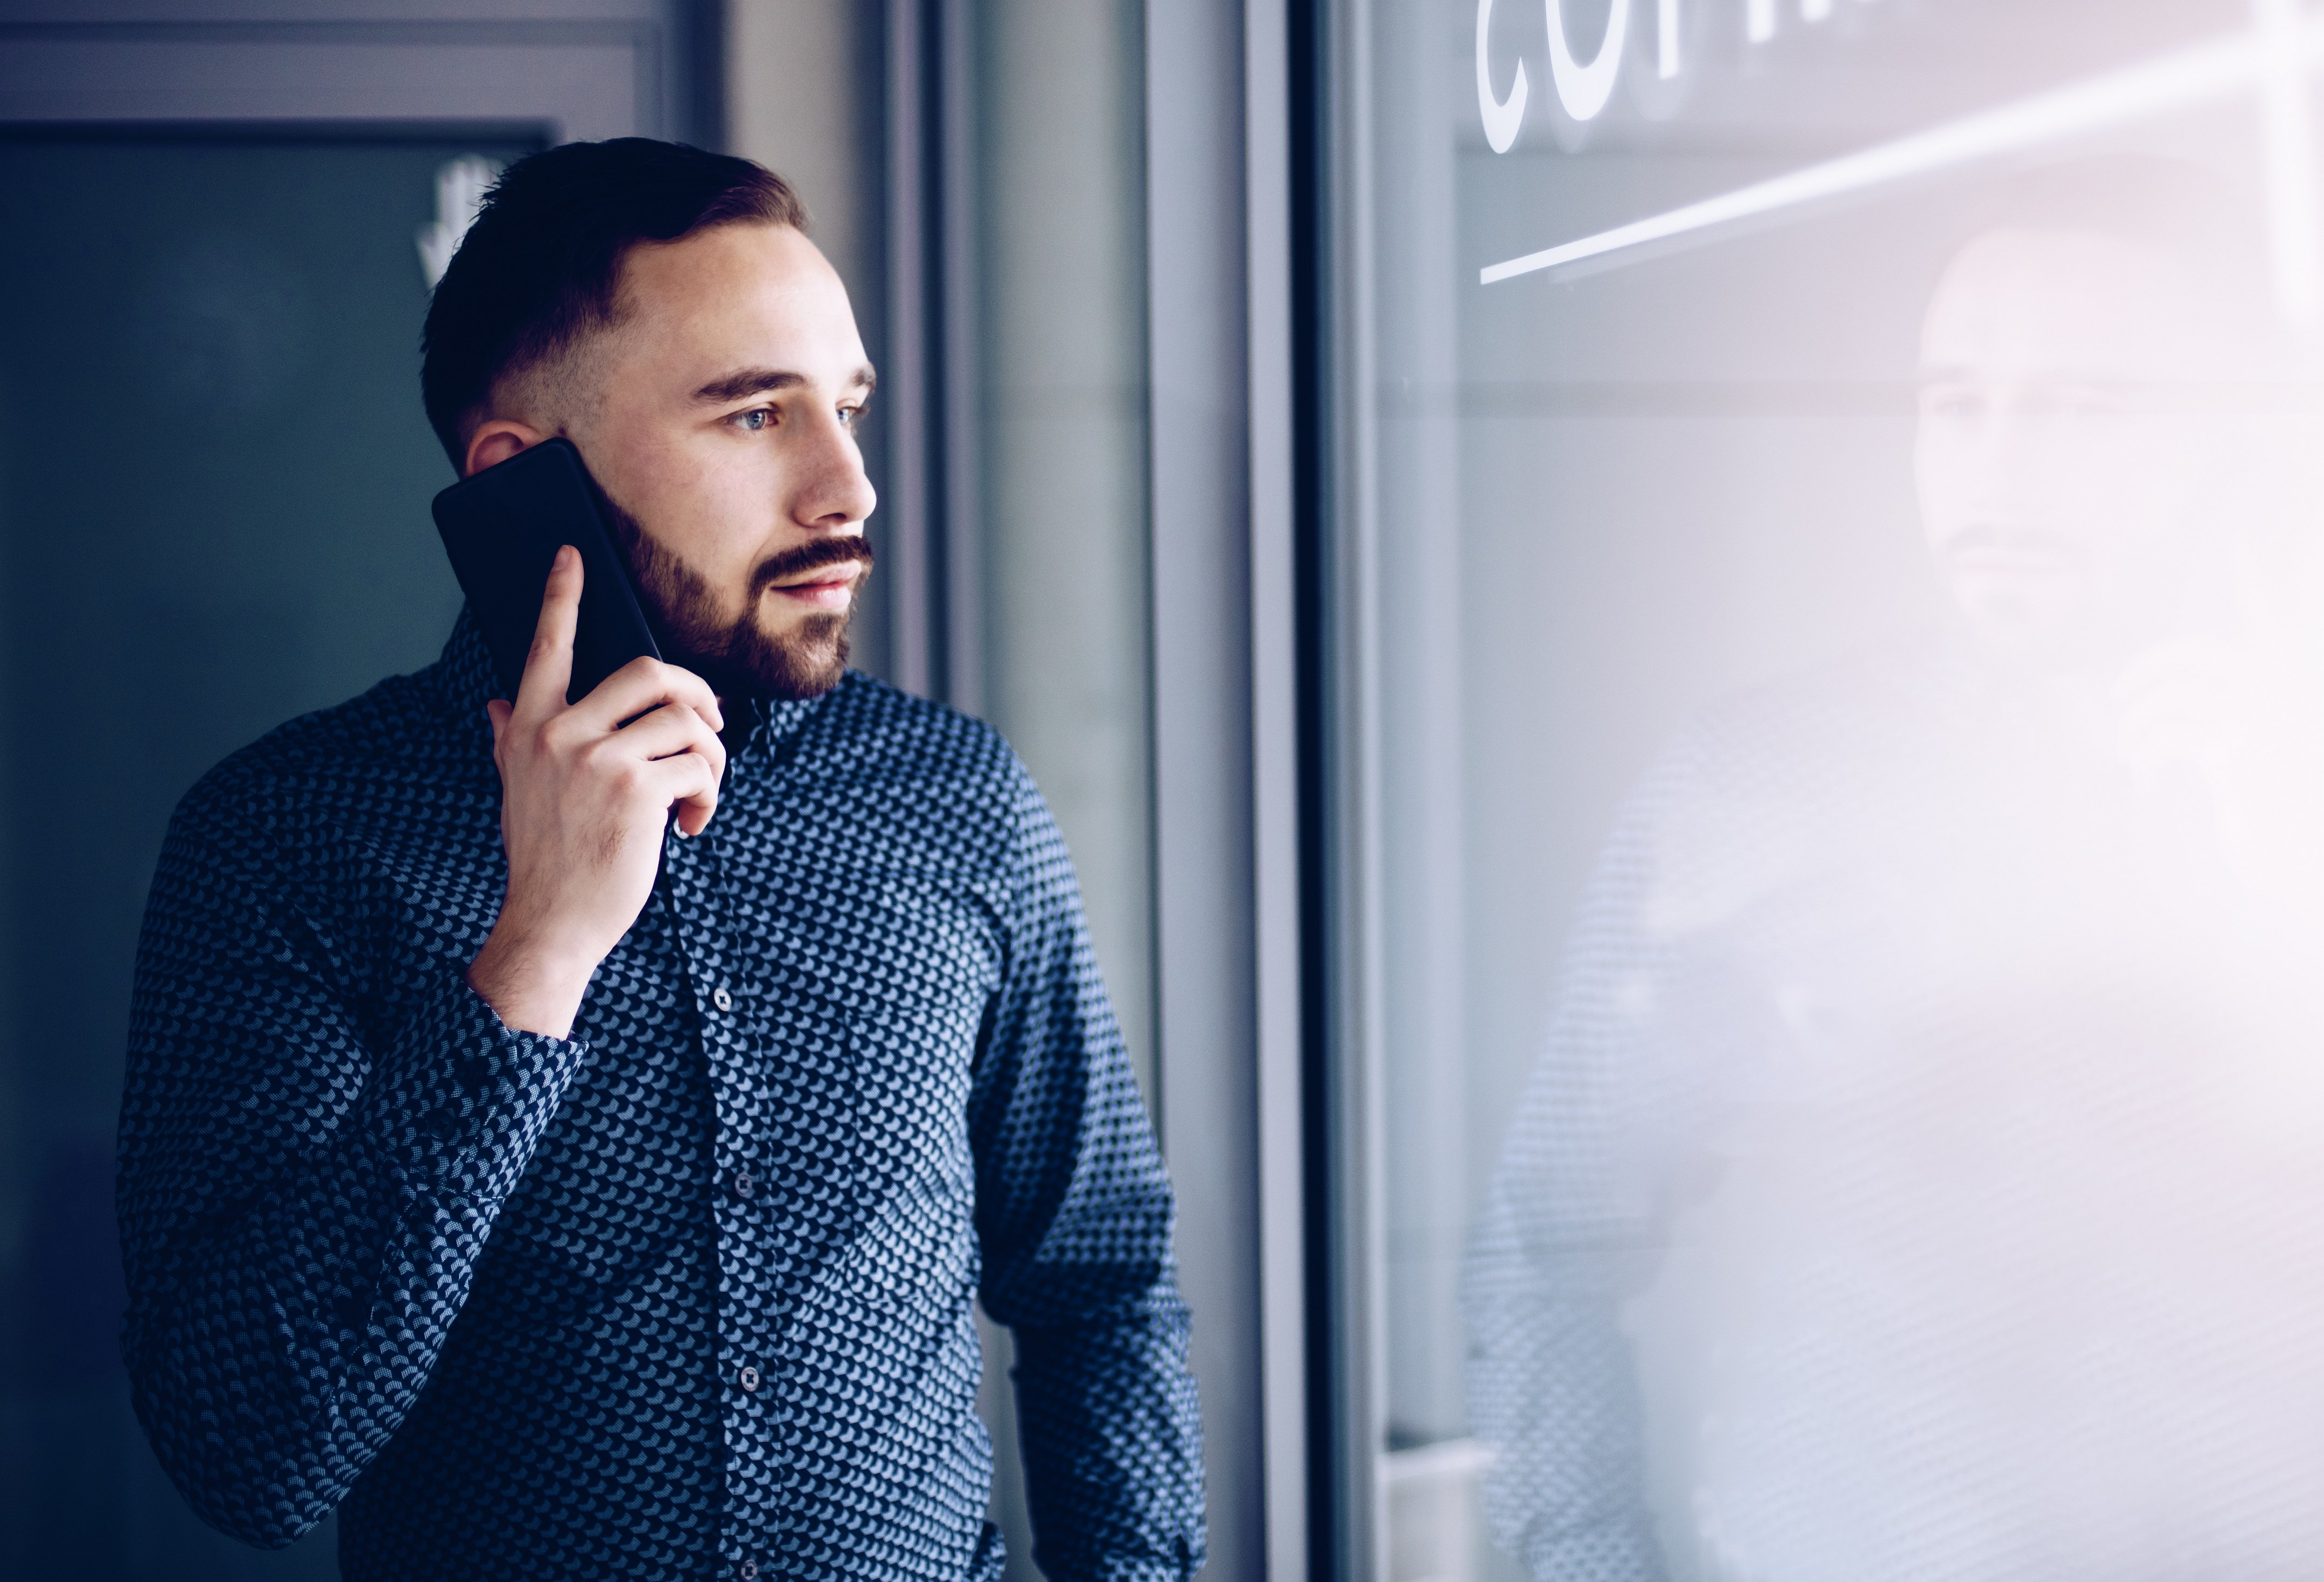 Man talking on a phone. Photo: Shutterstock